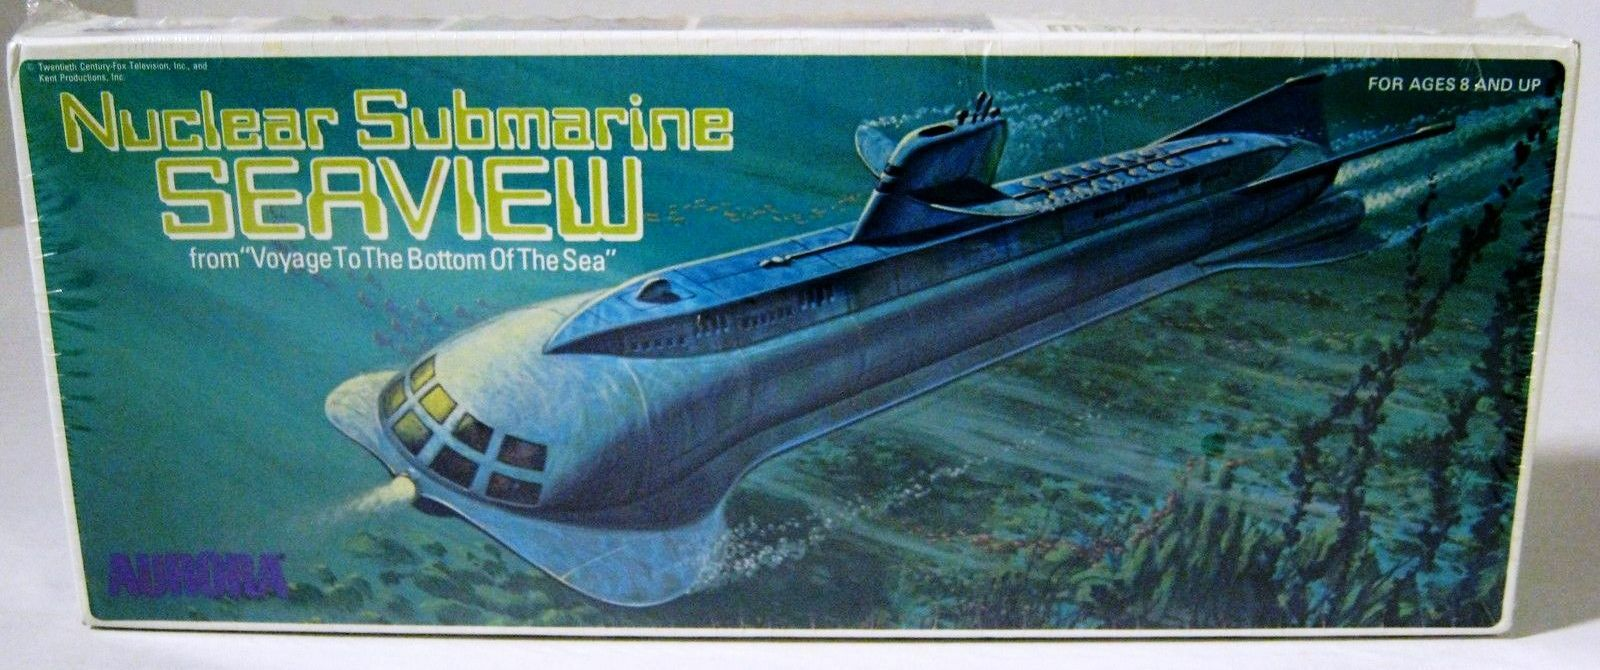 Viaje hasta el fondo del mar-Seaview Aurora Model Kit de submarinos nucleares